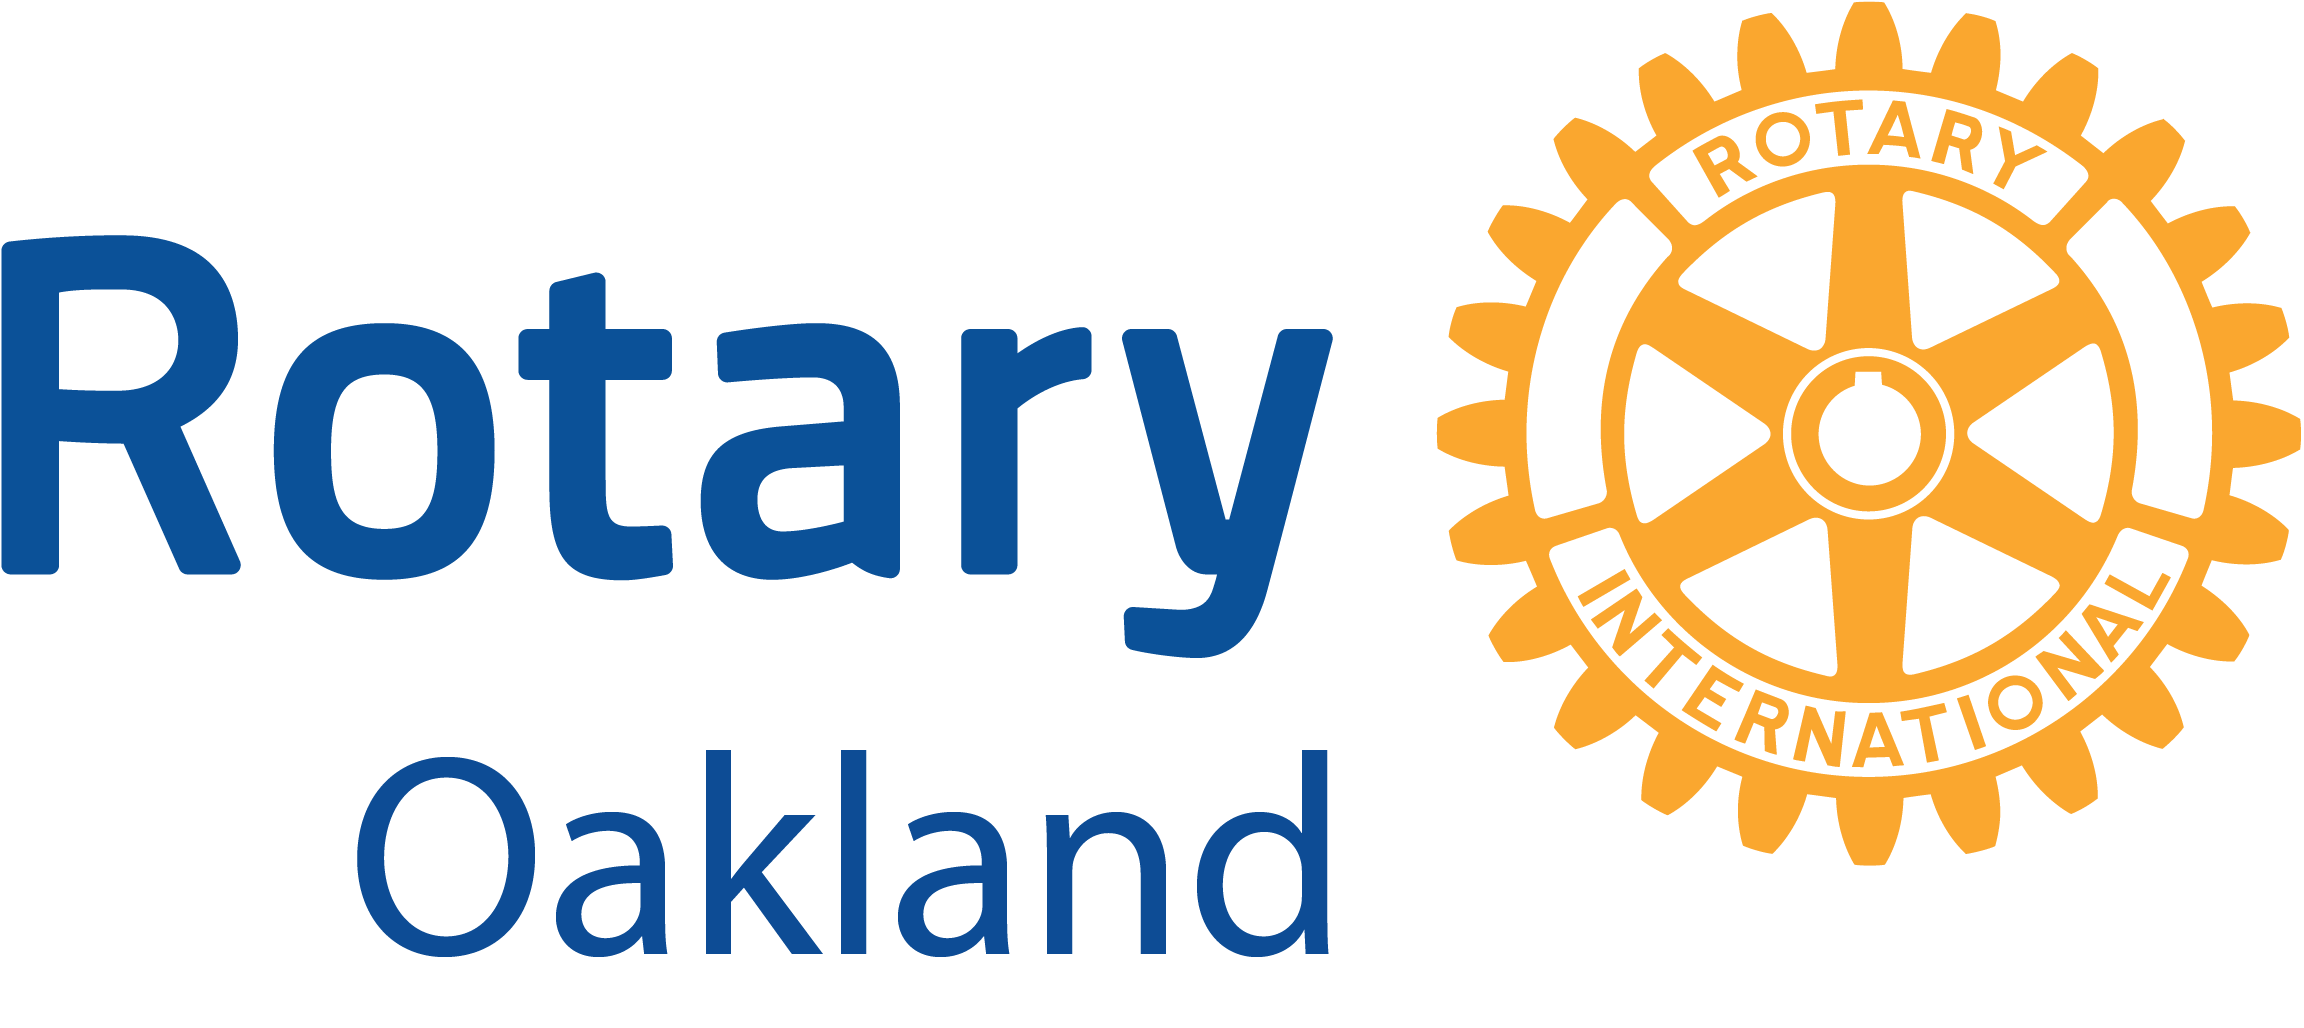 A logo that links to Rotary Club Oakland